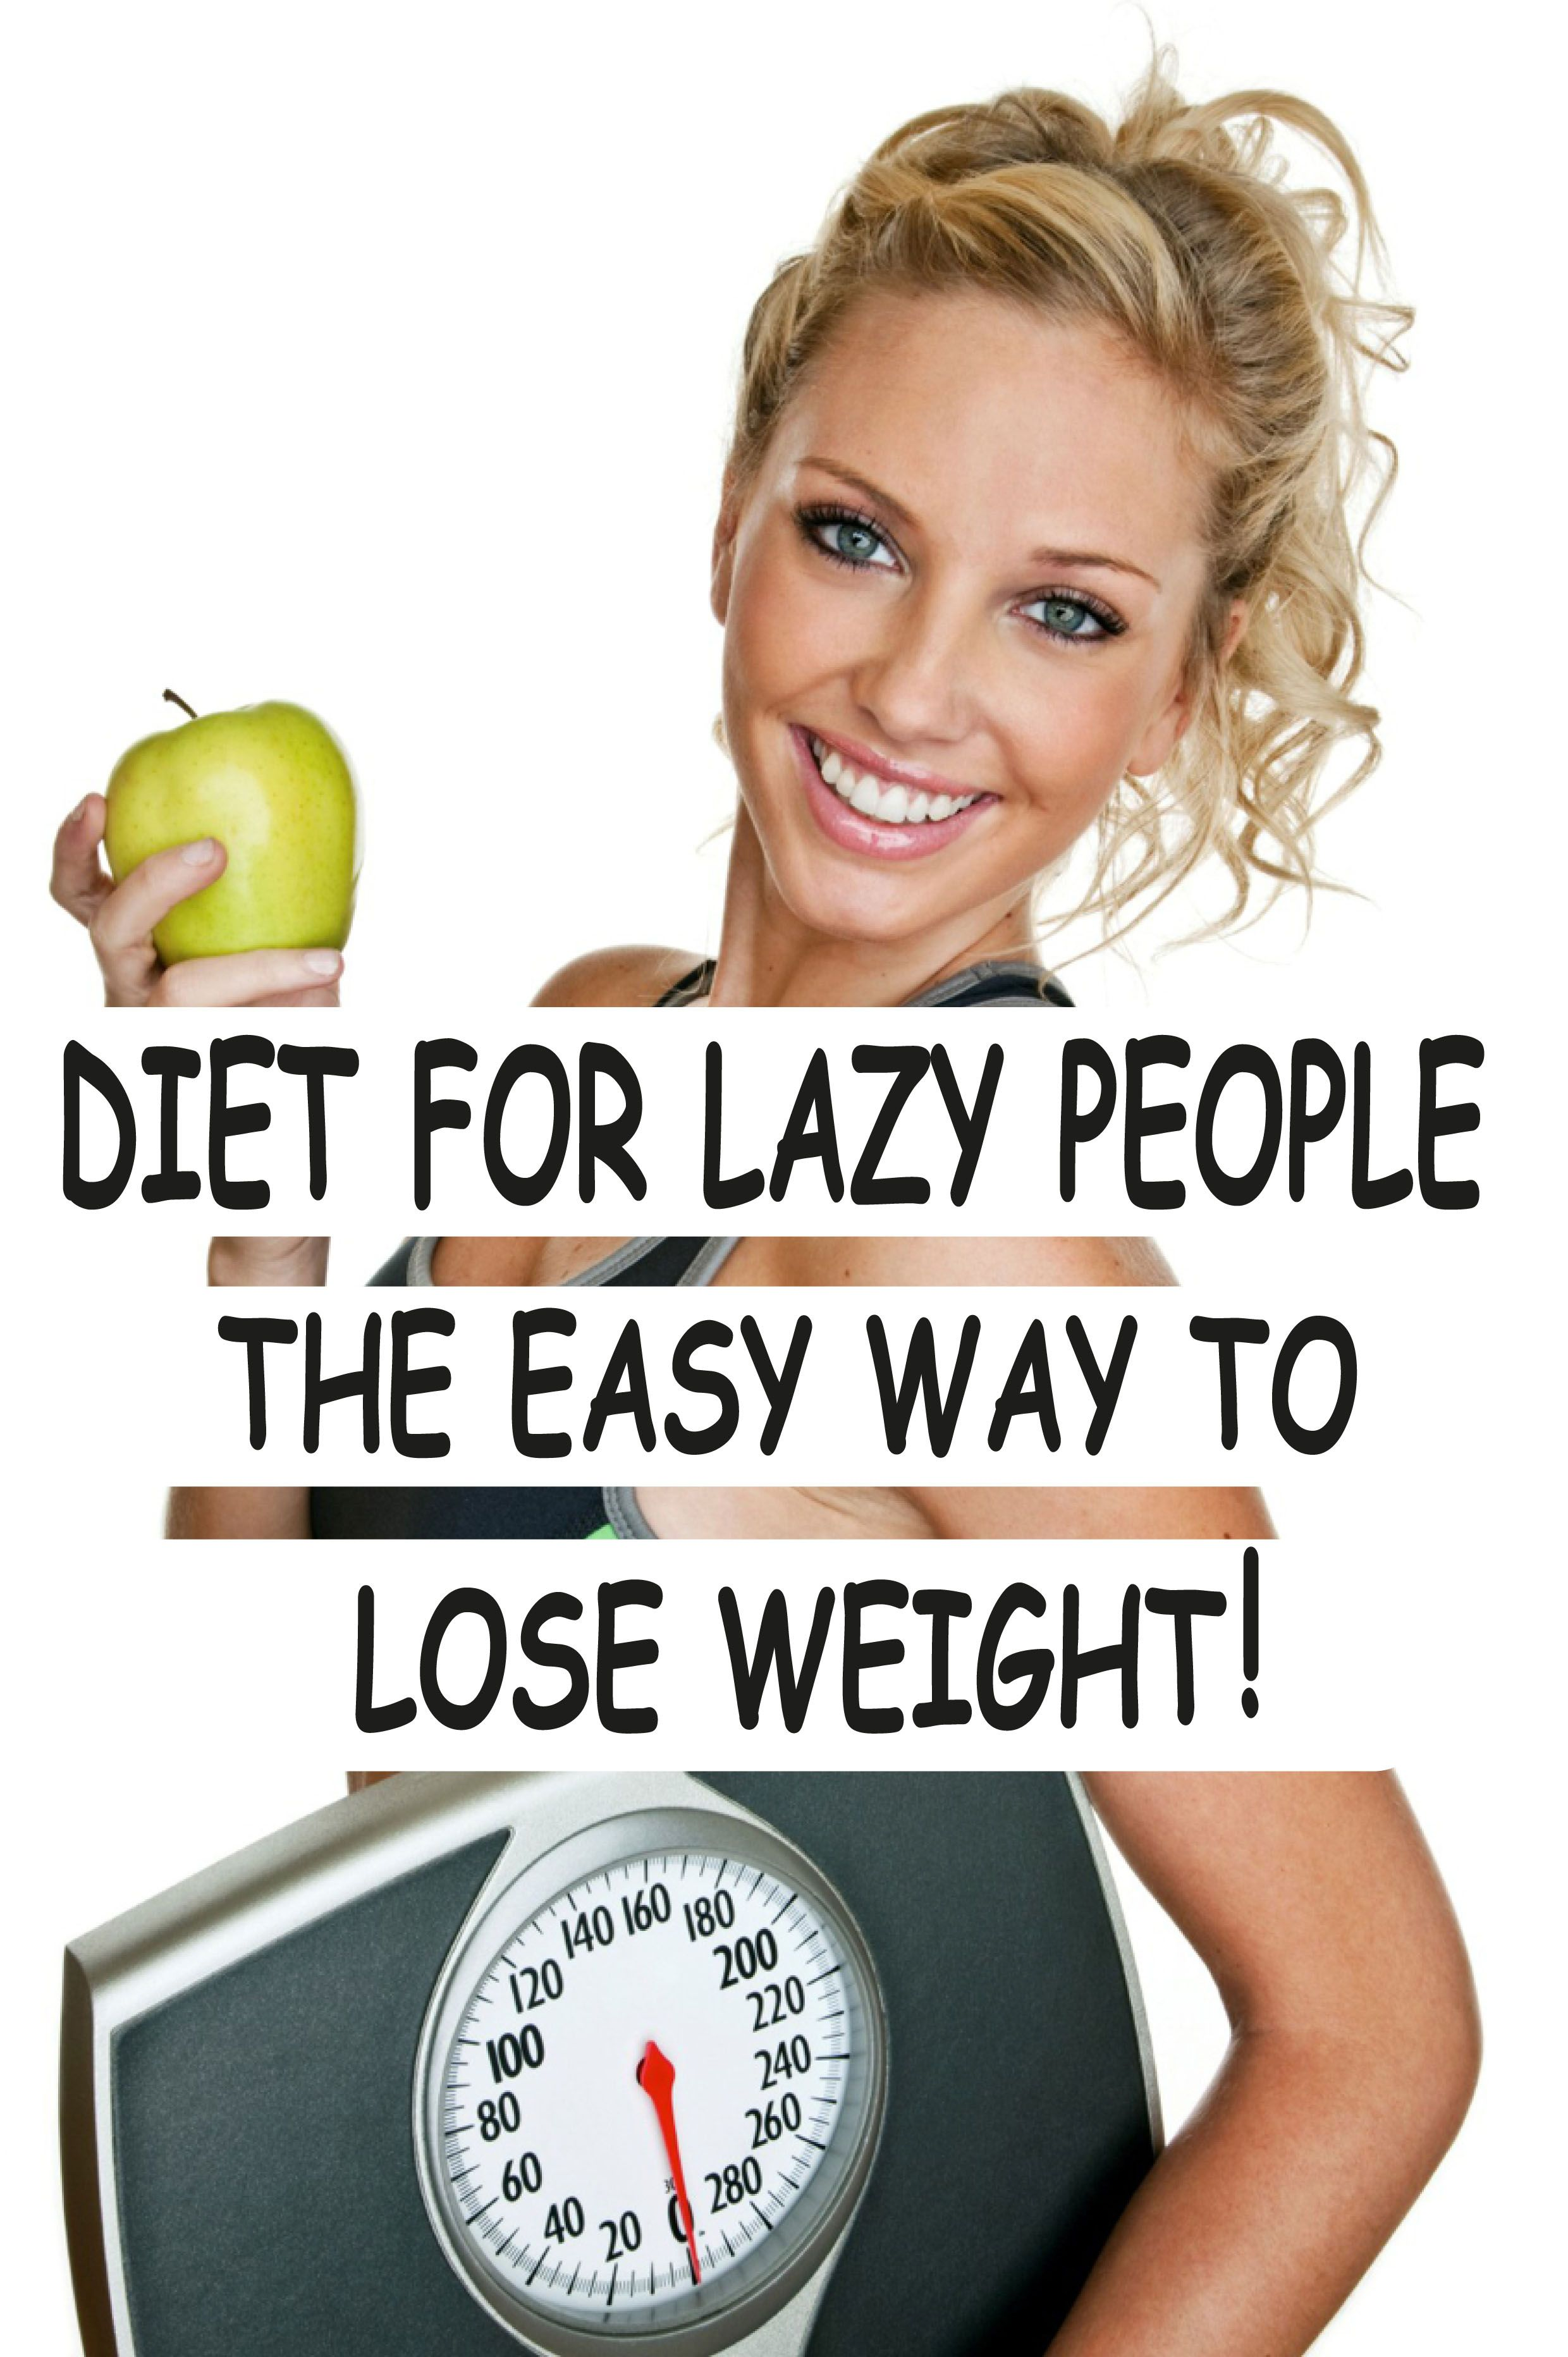 Diet For Lazy People The Easy Way To Lose Weight!